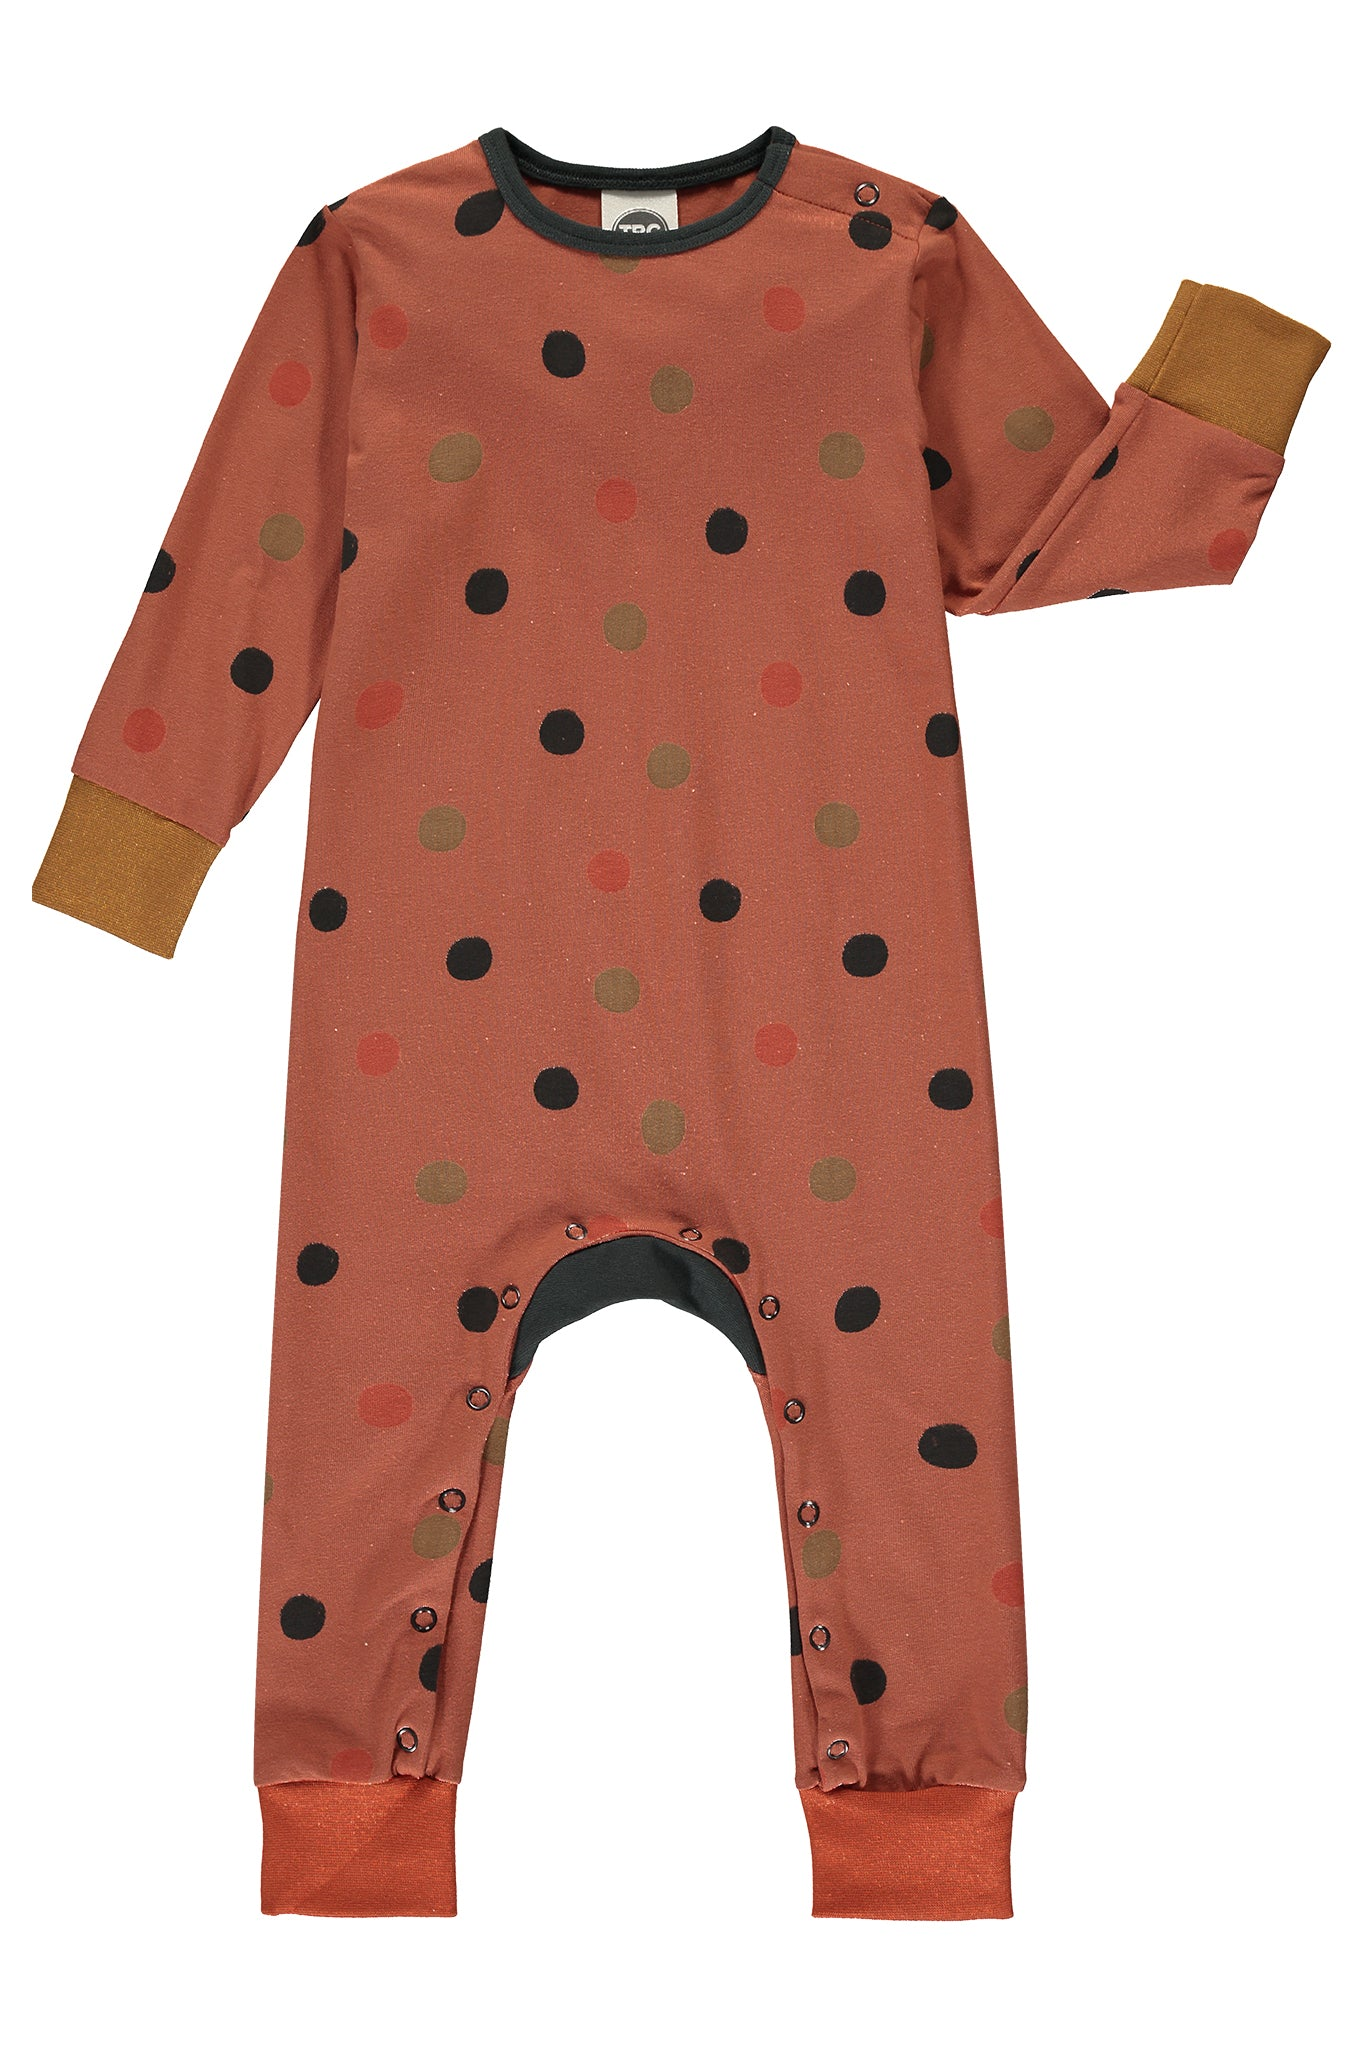 MONTY SLEEPSUIT - MULTI POLKA DOT - RUST